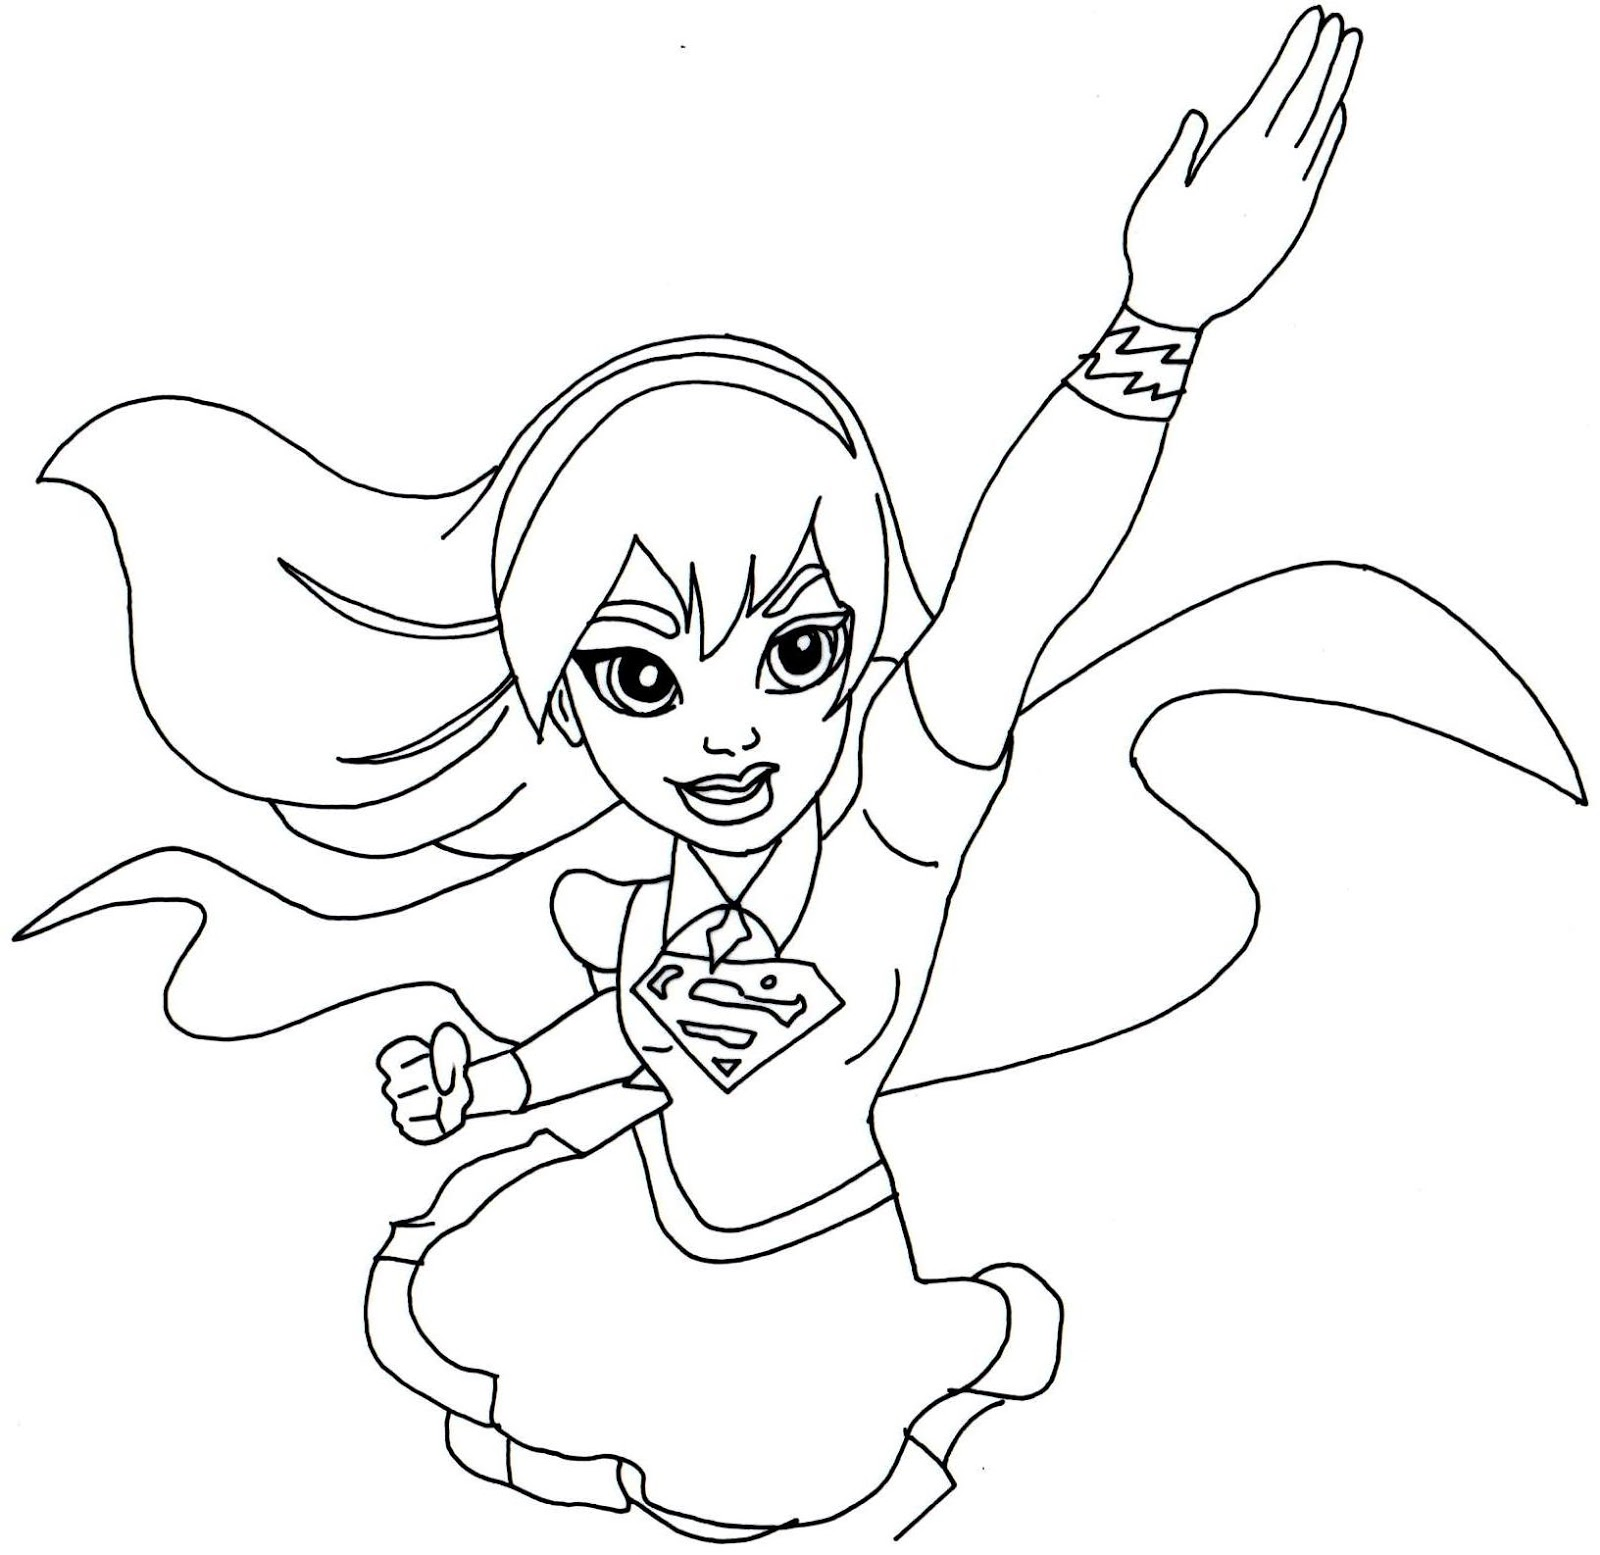 - Girl Superhero Images Coloring Pages